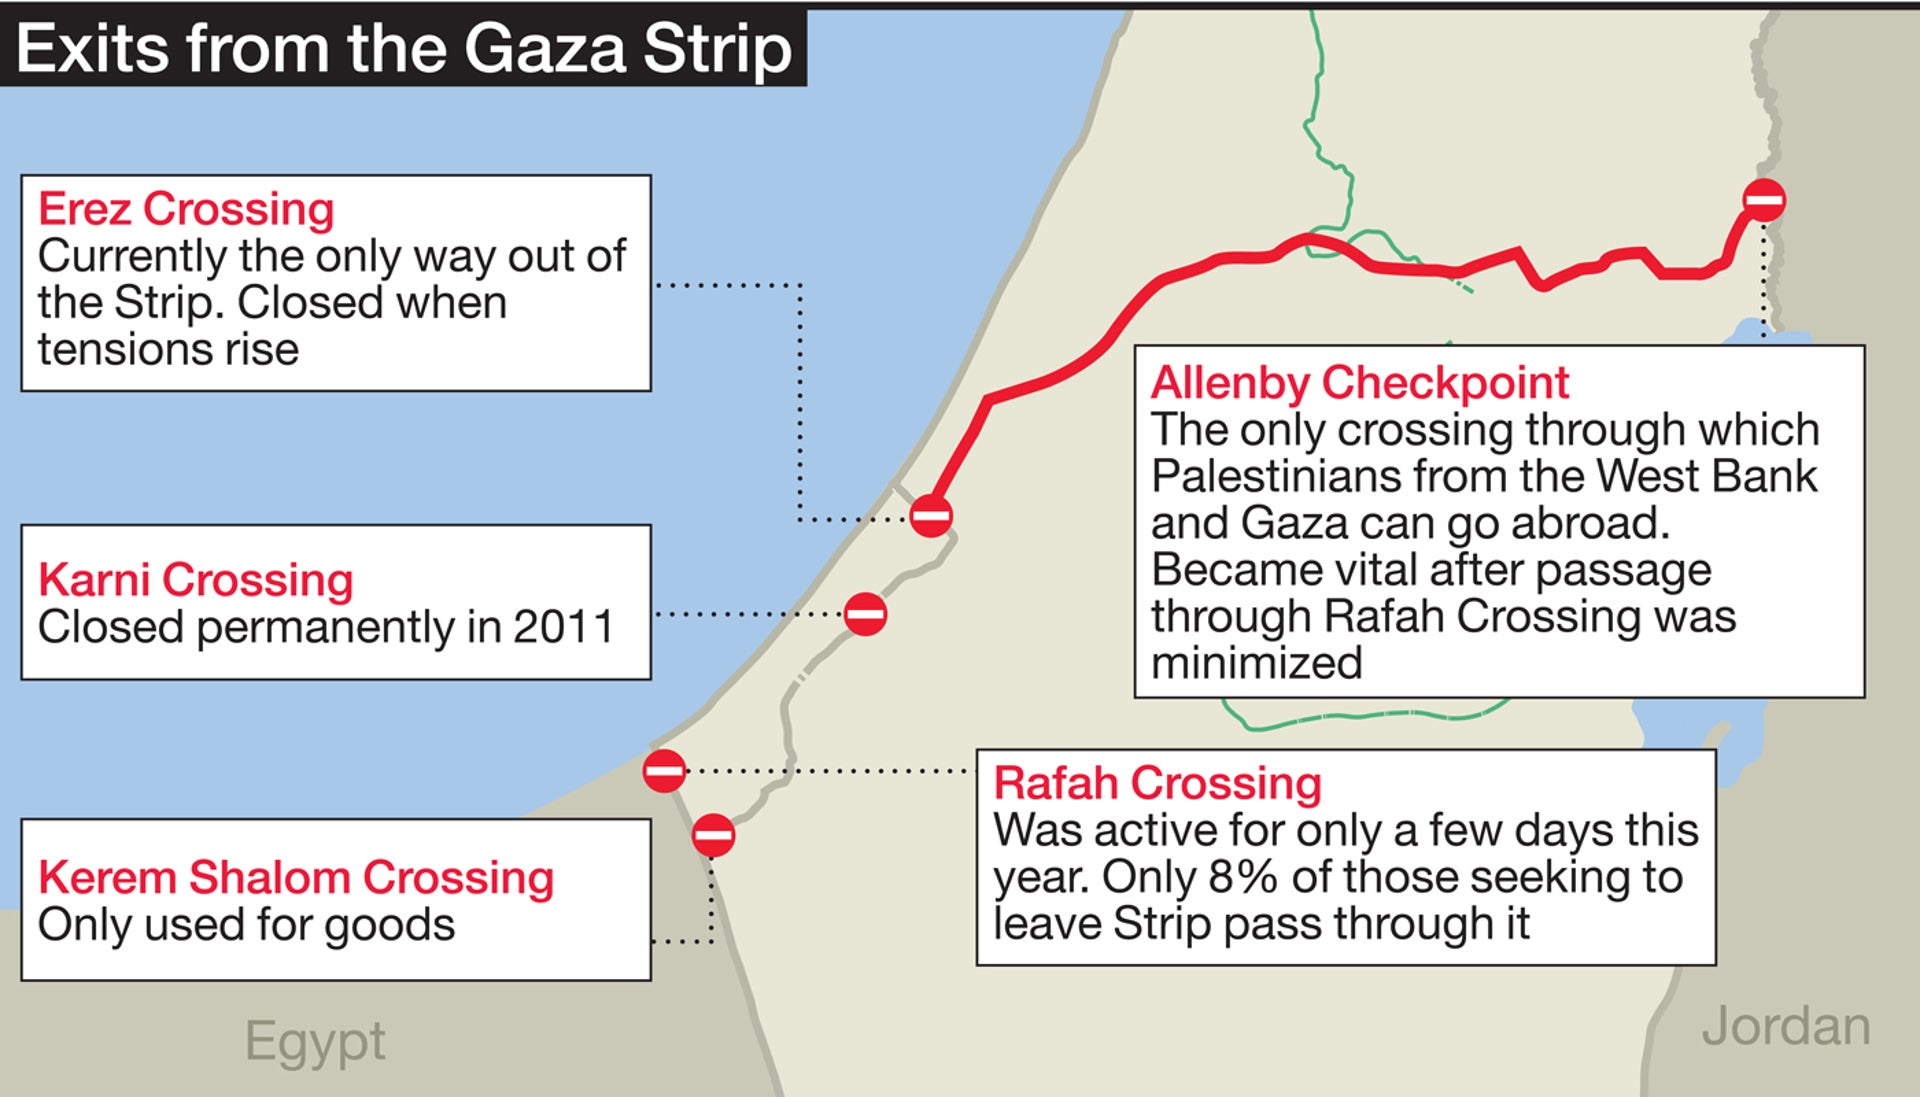 Infographic of Exits from the Gaza Strip.